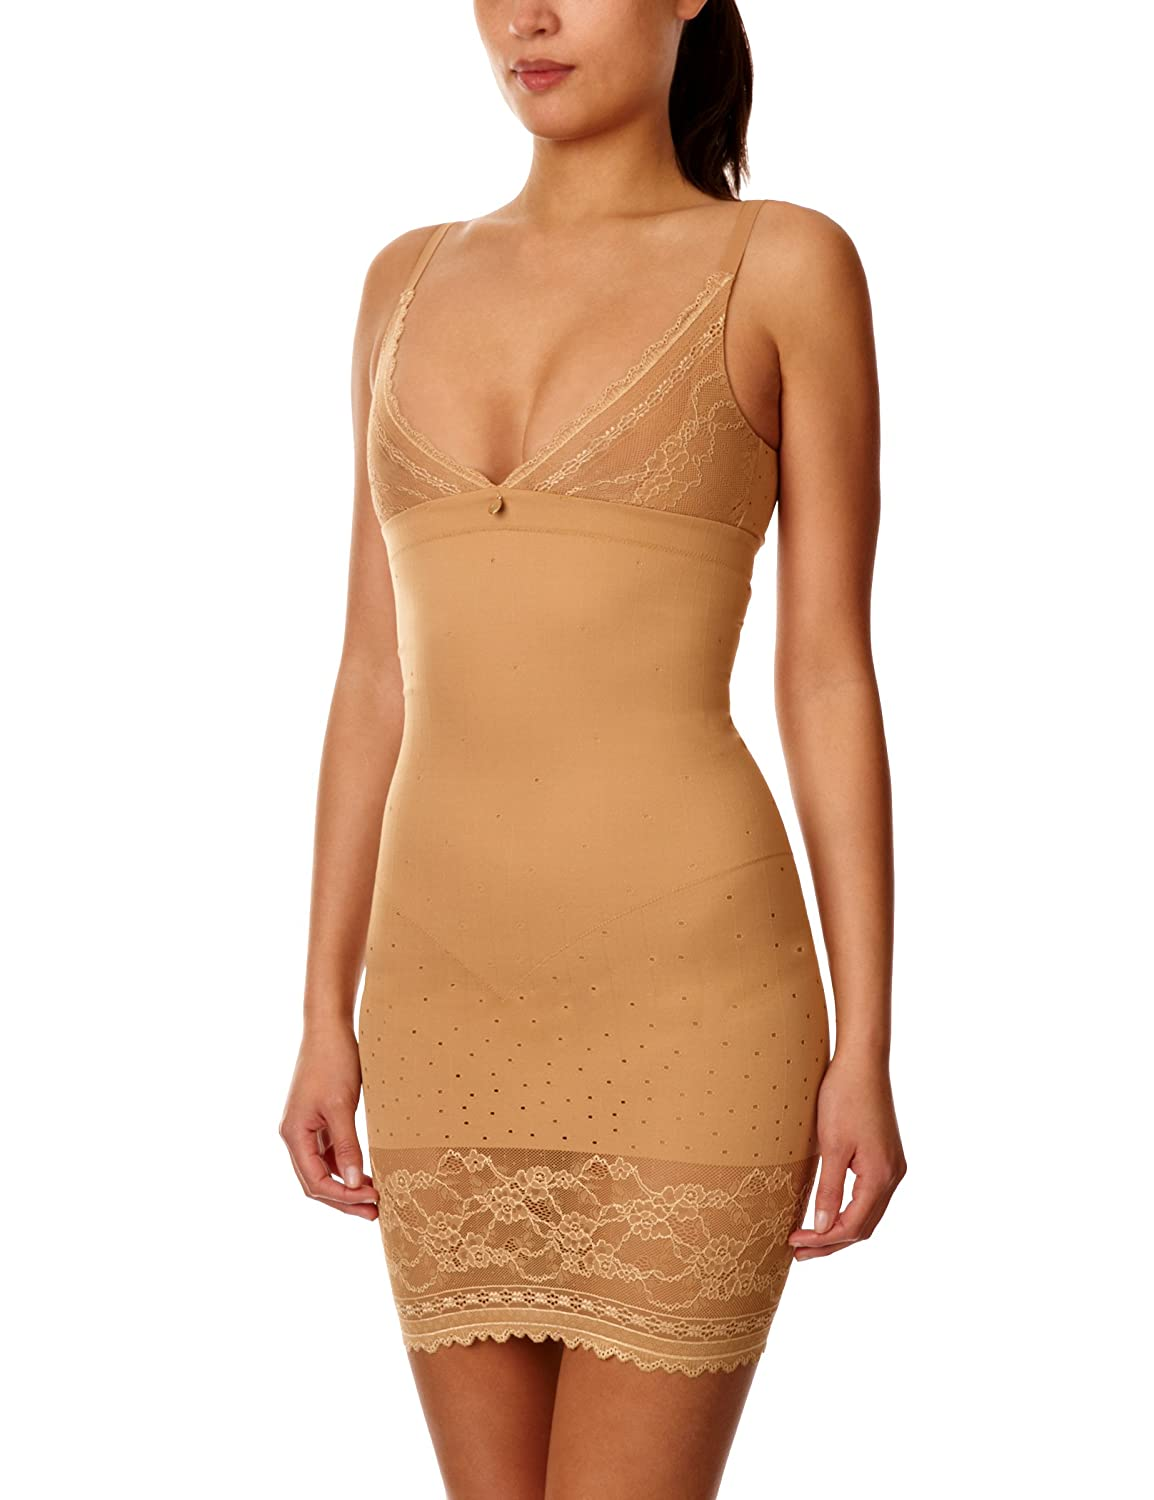 Triumph Damen Body Lace Sensation Bodydress jetzt bestellen